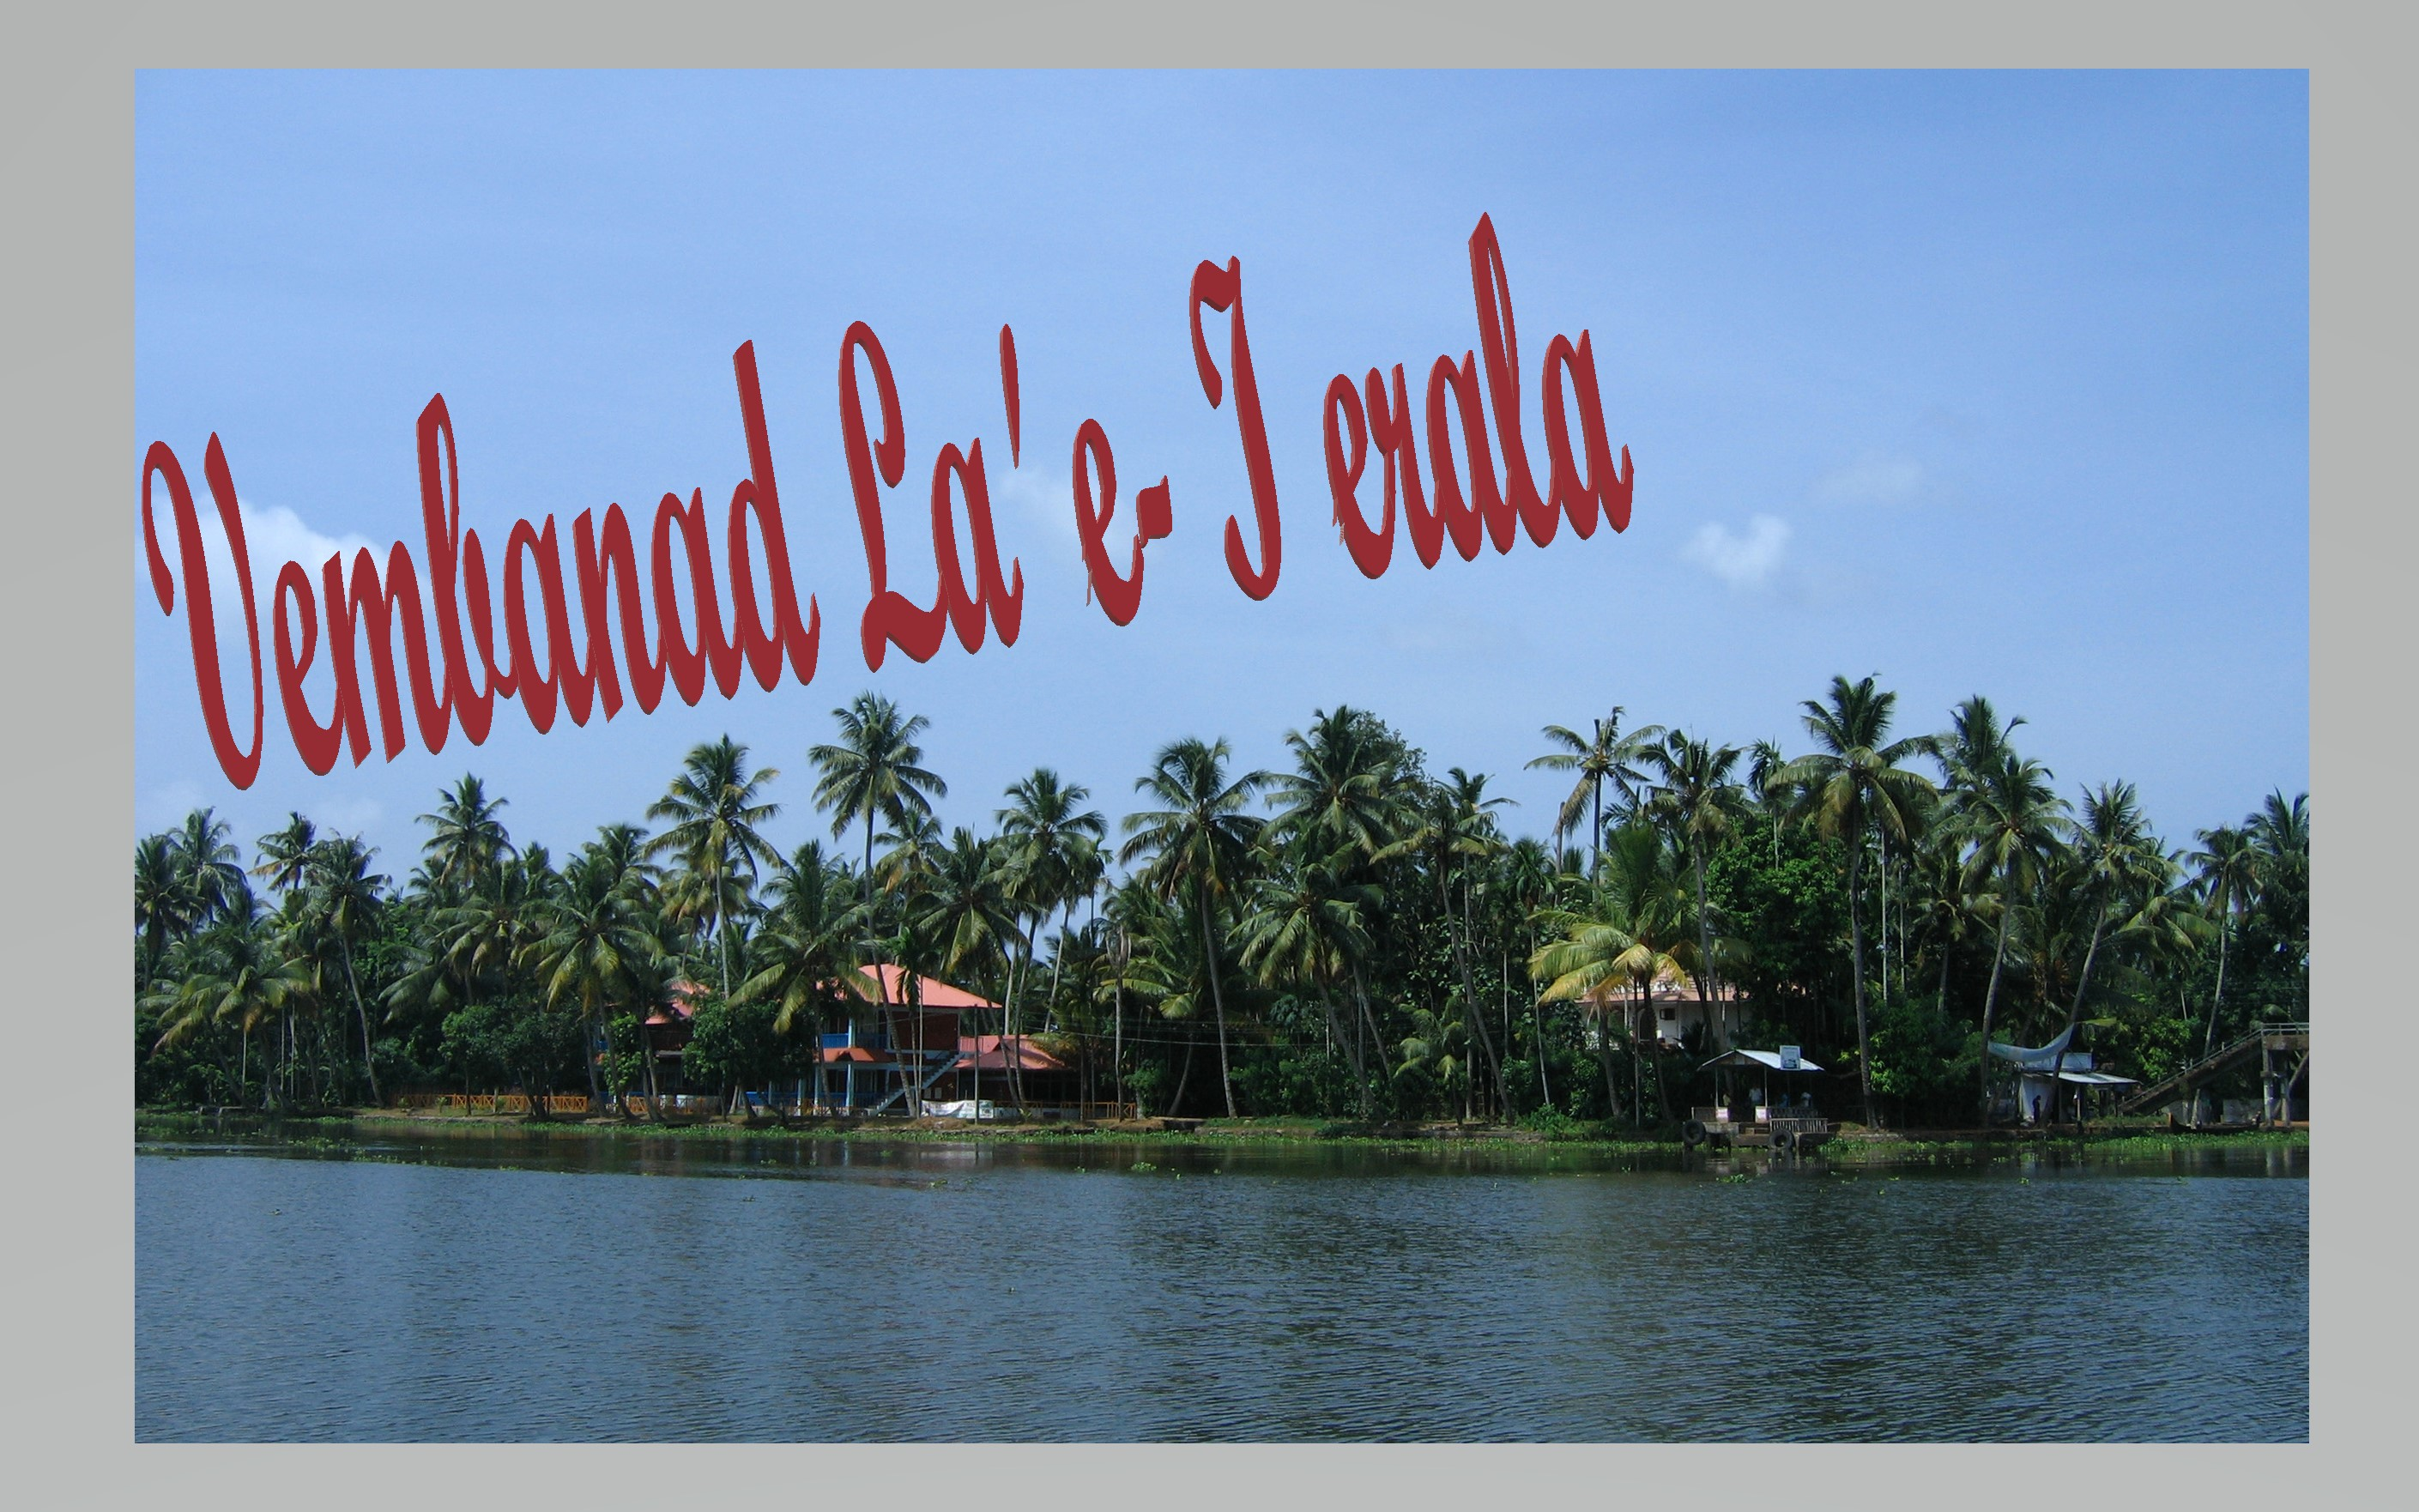 Vembanad Lake